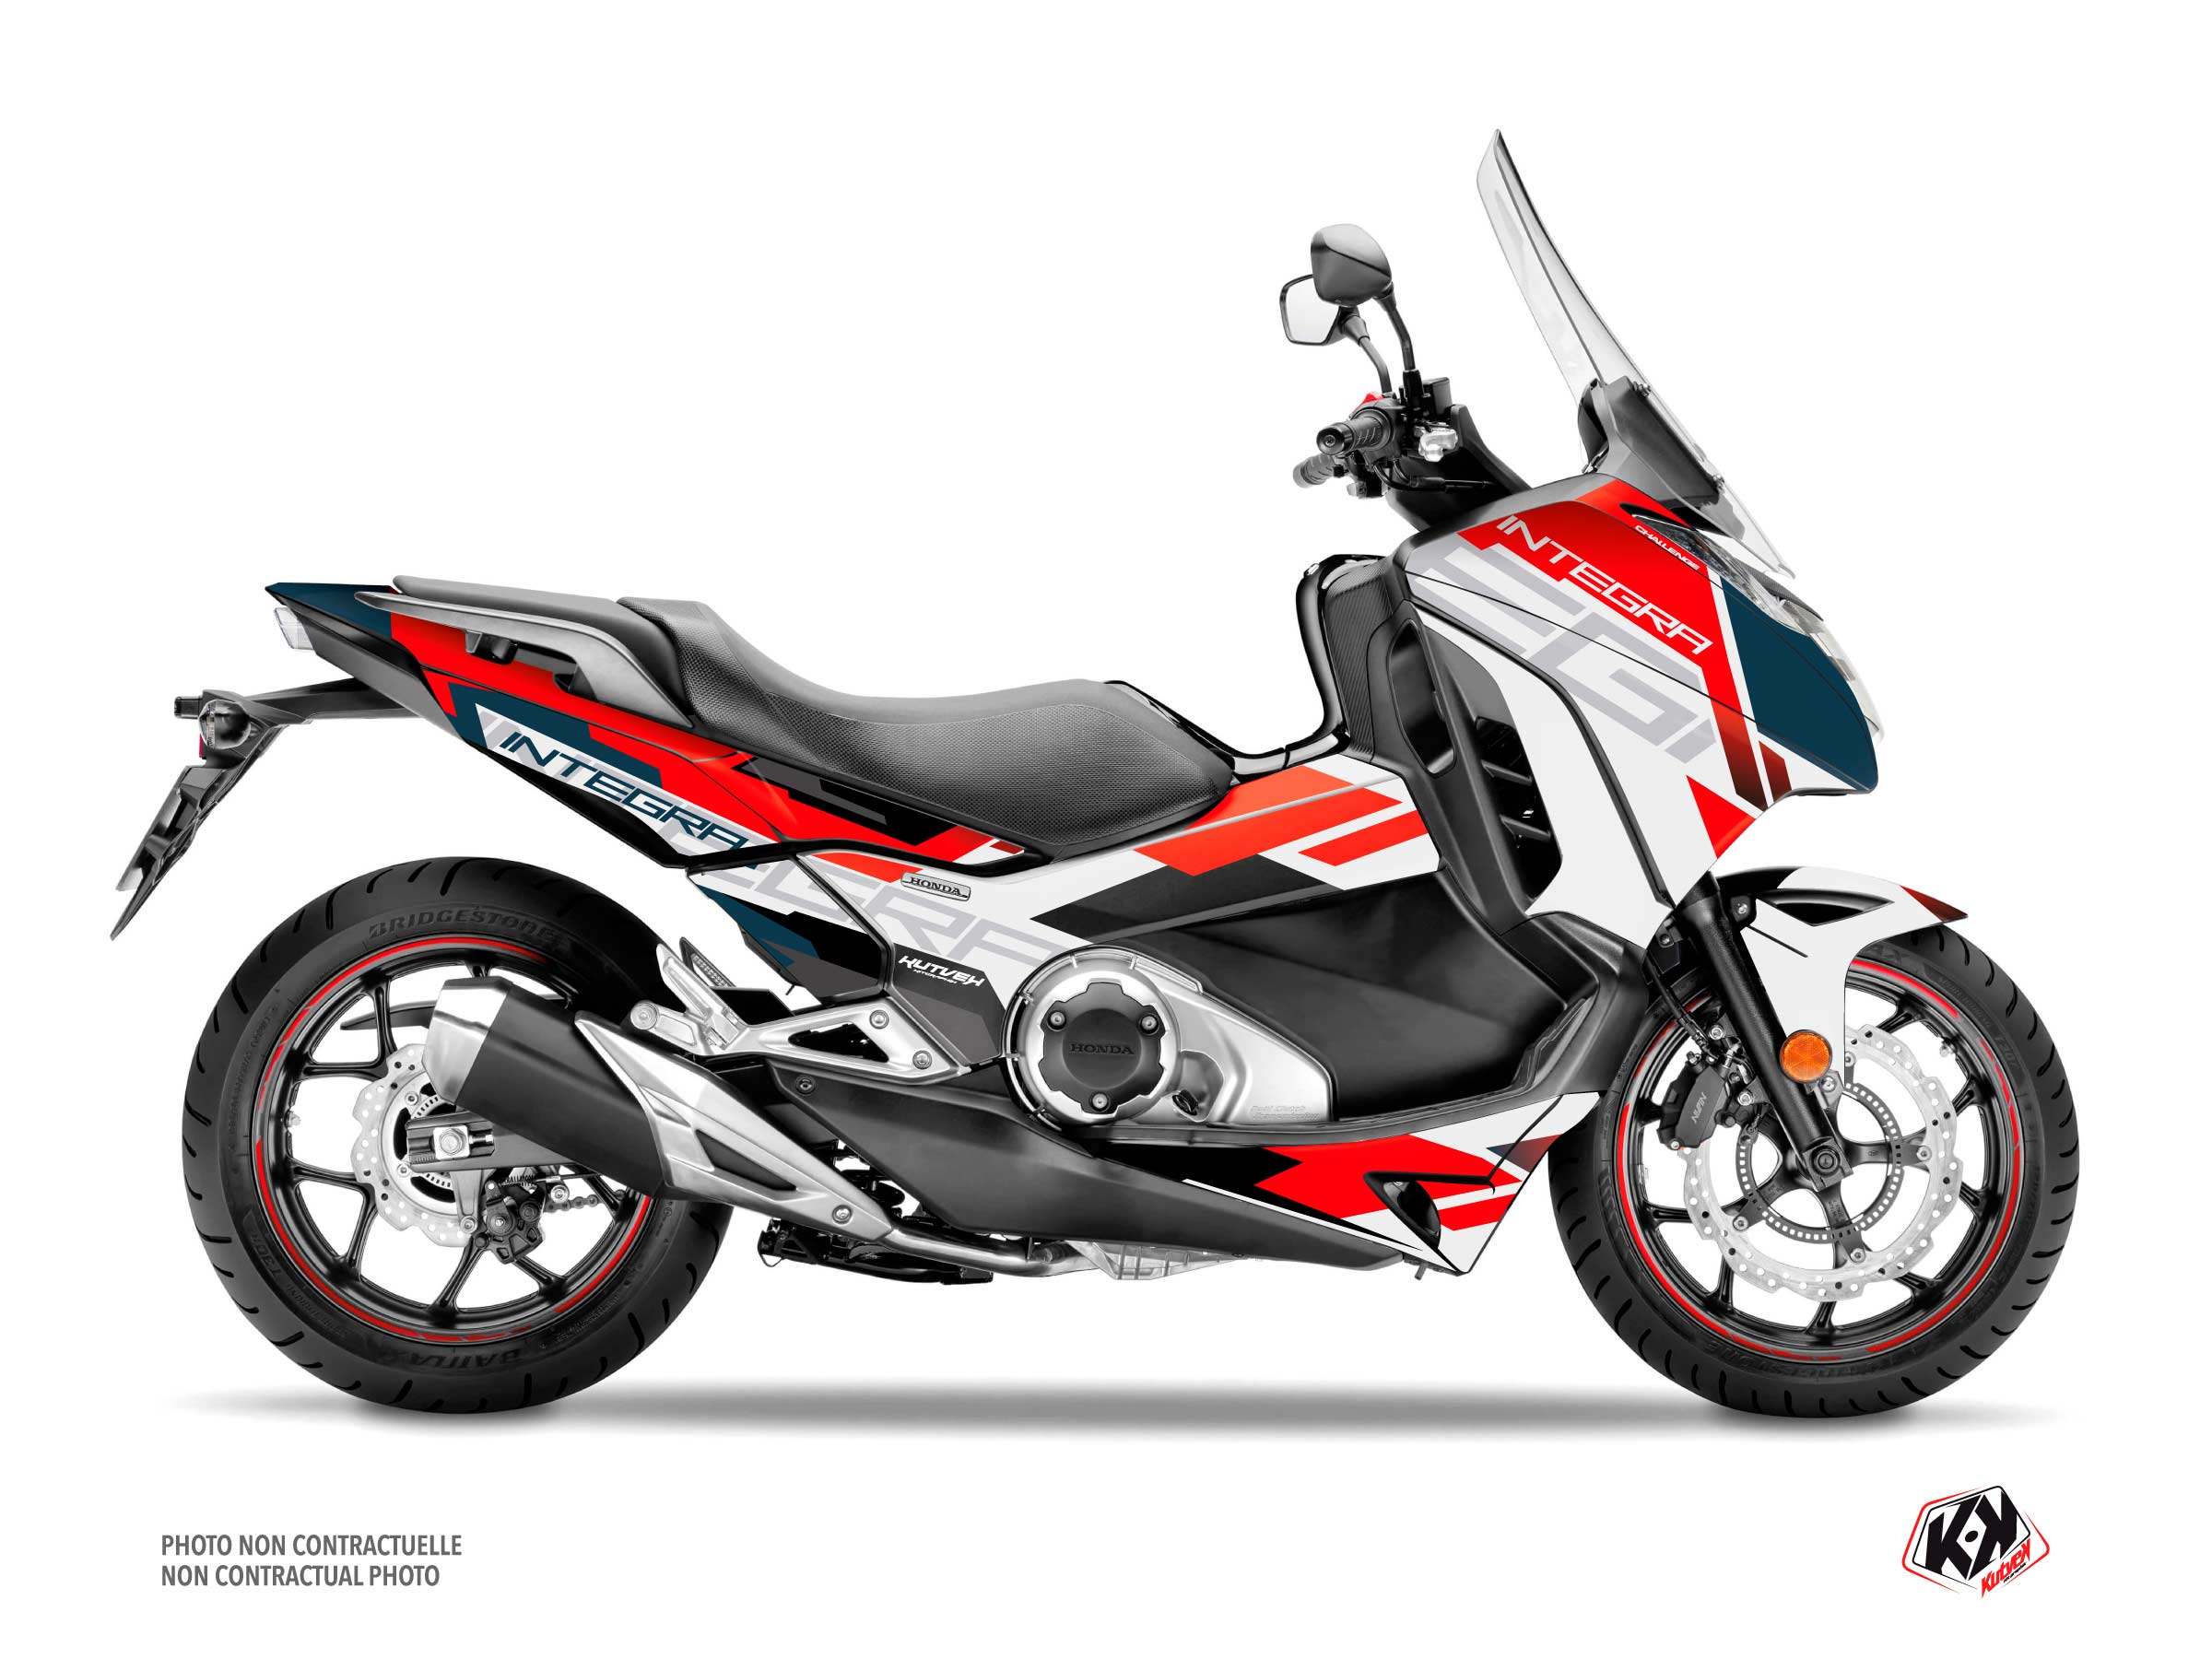 Honda Integra 750 Maxiscooter Challenge Graphic Kit White